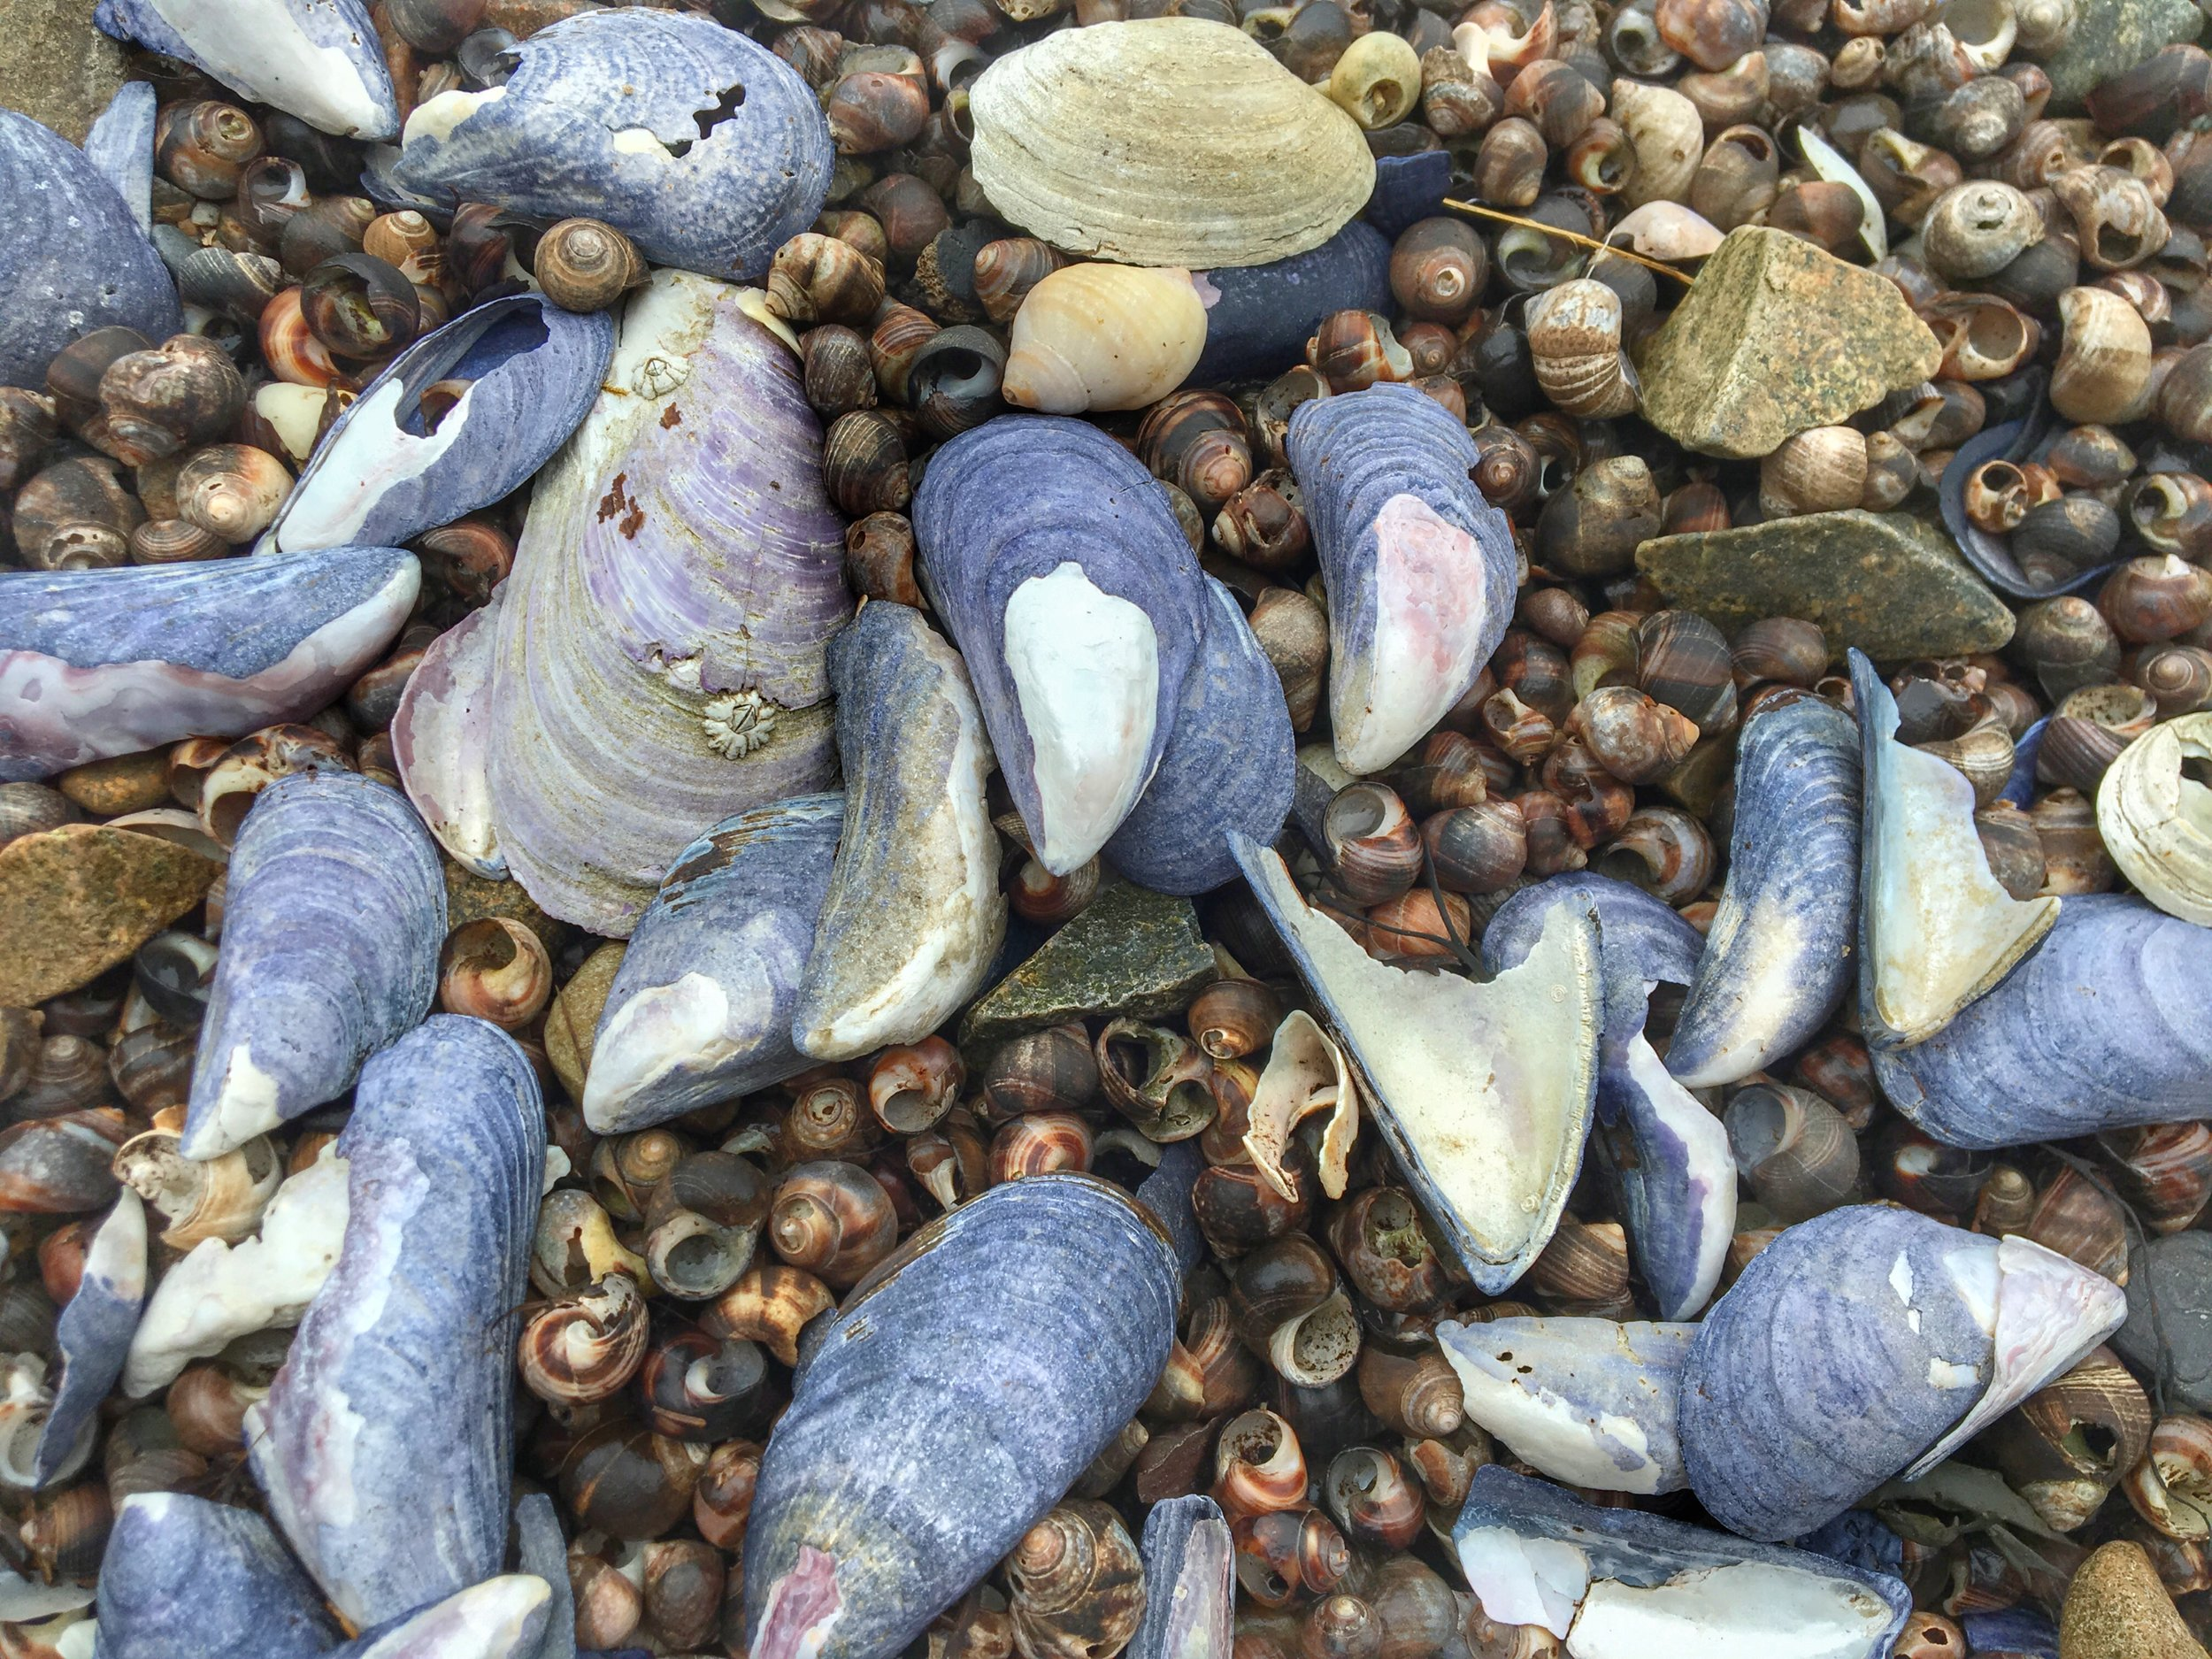 Periwnkle snail shells and what I think are blue mussel shells. Feel free to correct me, I'm not BivalveChick...but what a fun name to say out loud for whomever is.